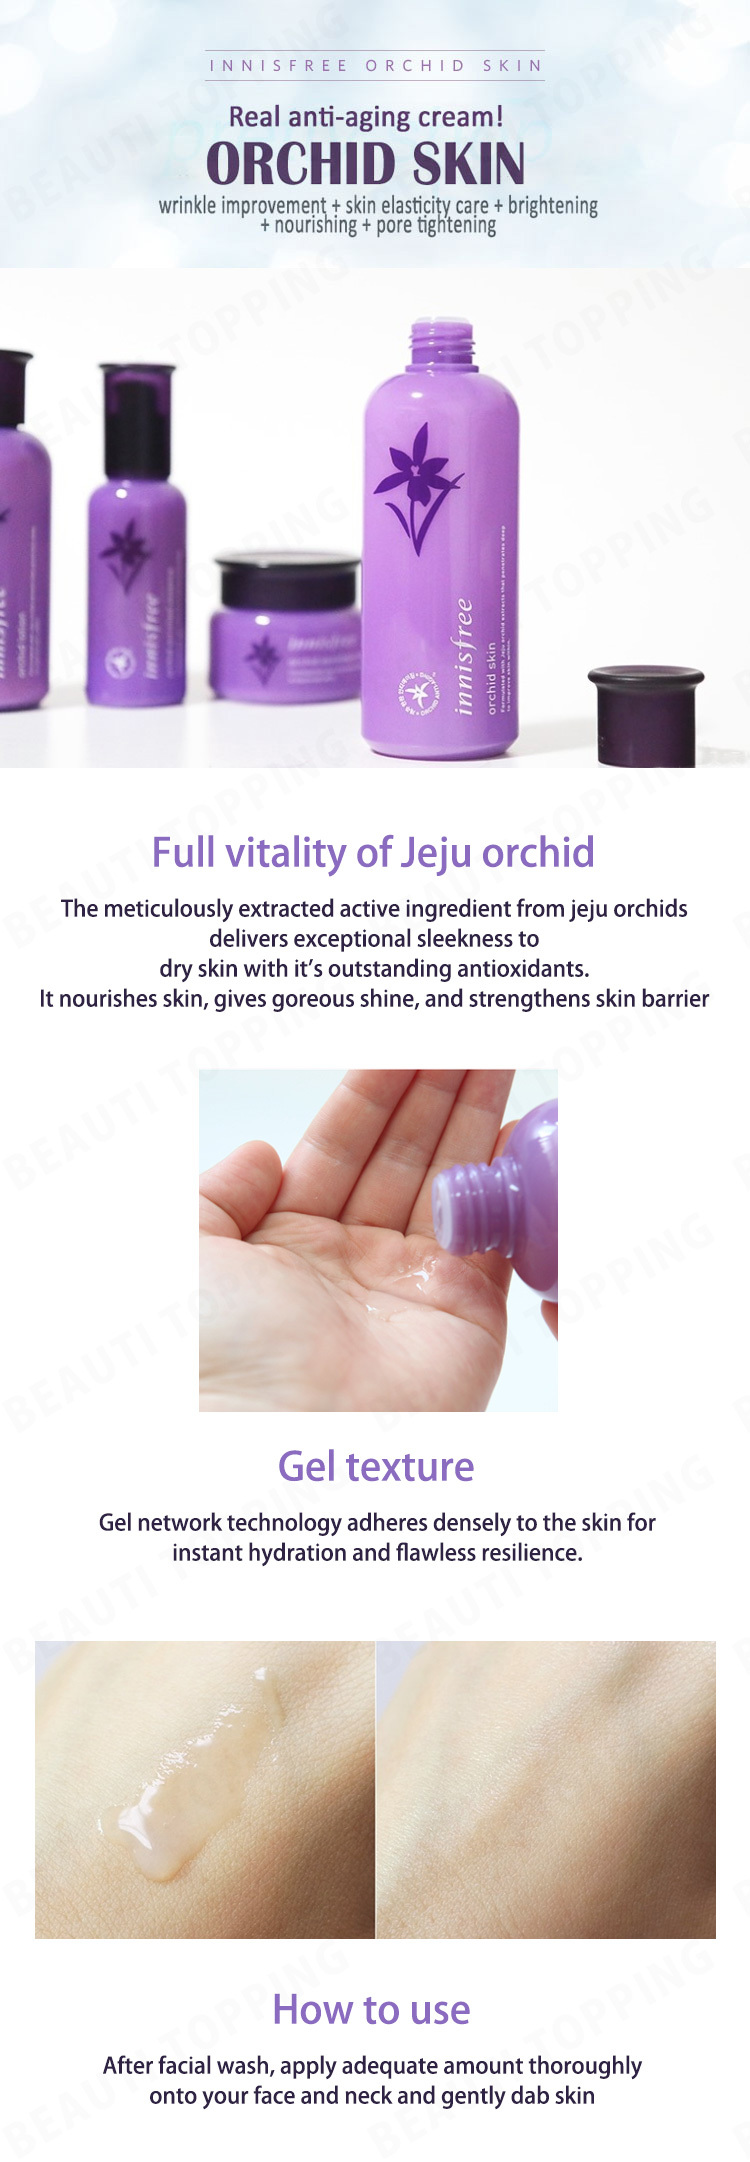 Only 1 Day Innisfree Orchid Lineskin Lotion Essence Intense Skin Dayinnisfreeorchid Cream Beauti Topping